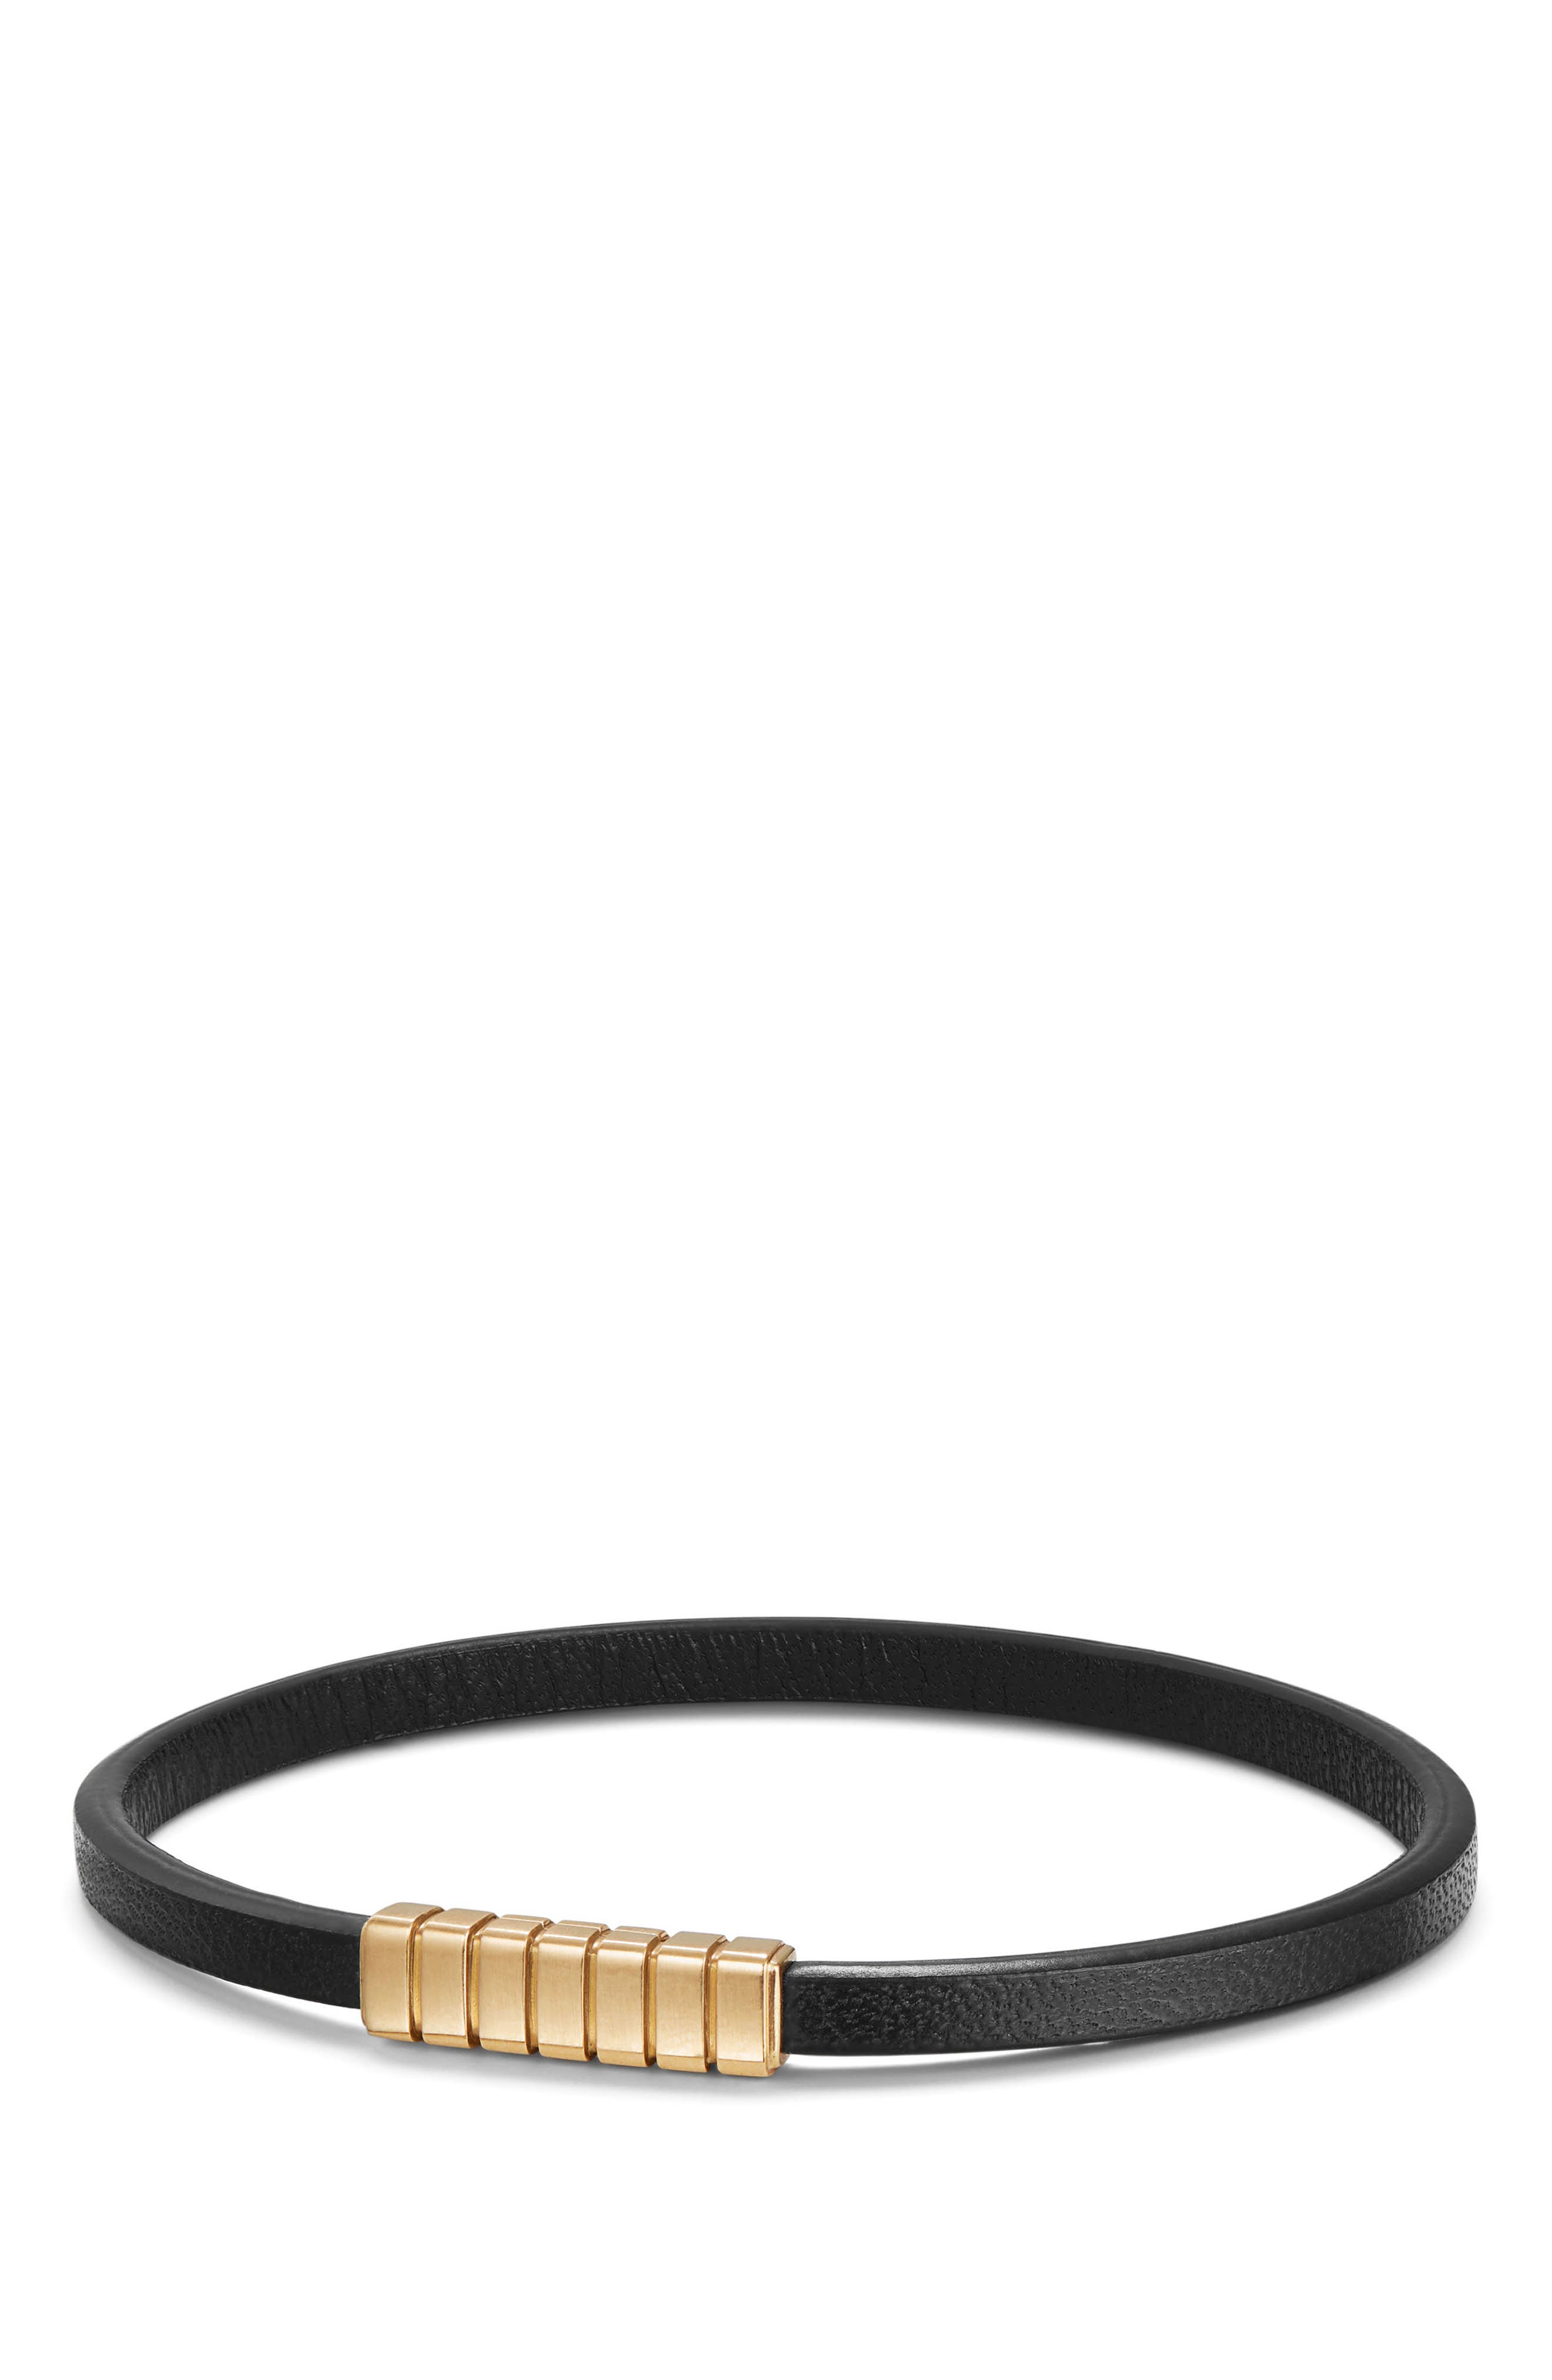 Southwest Narrow Leather Bracelet with 18K Gold,                         Main,                         color, BLACK